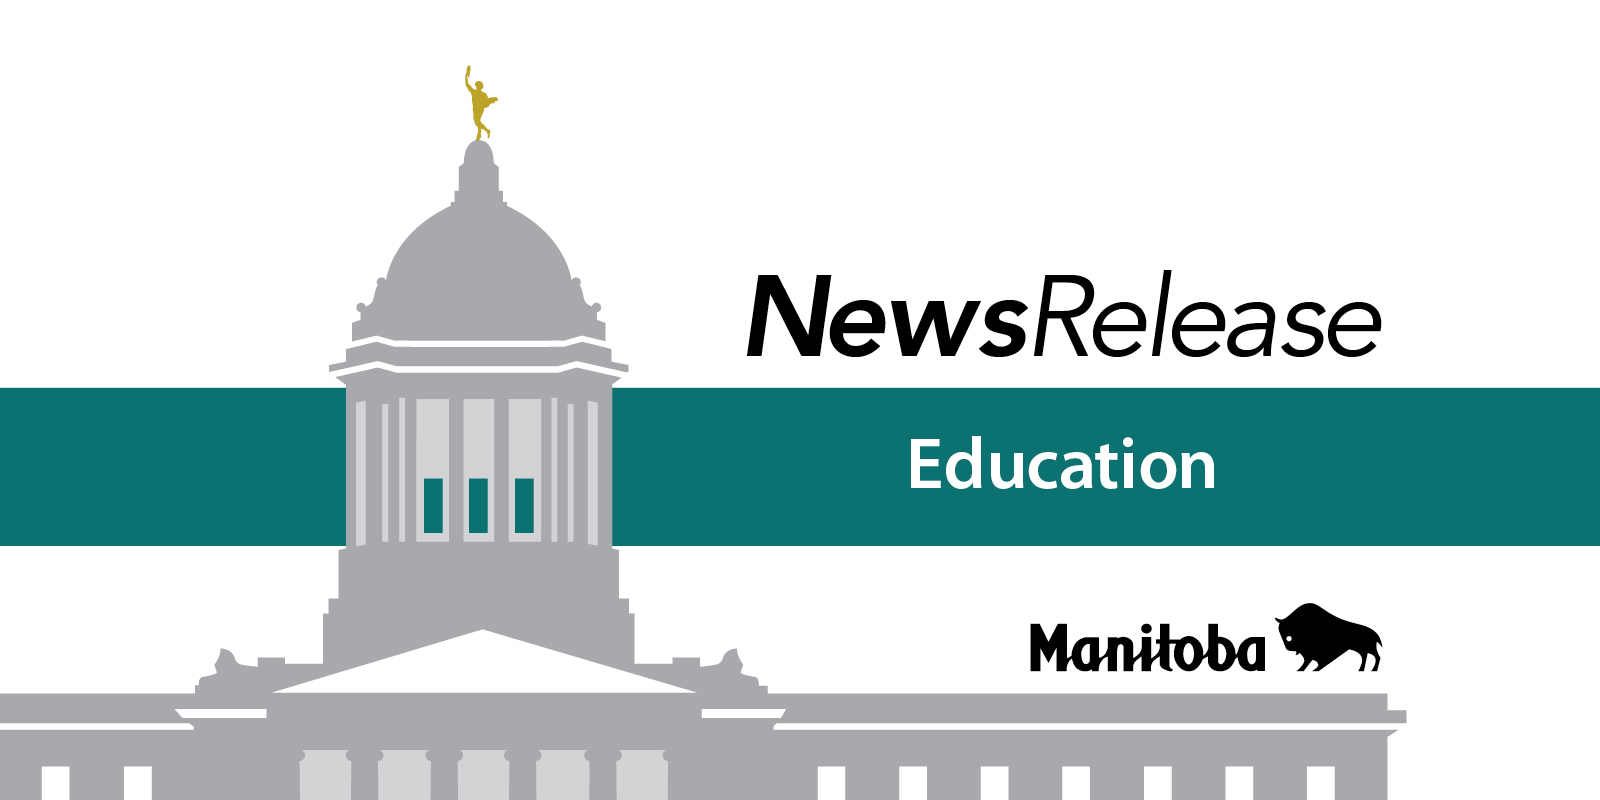 The Manitoba government renews funding to help ensure safe and caring learning environment